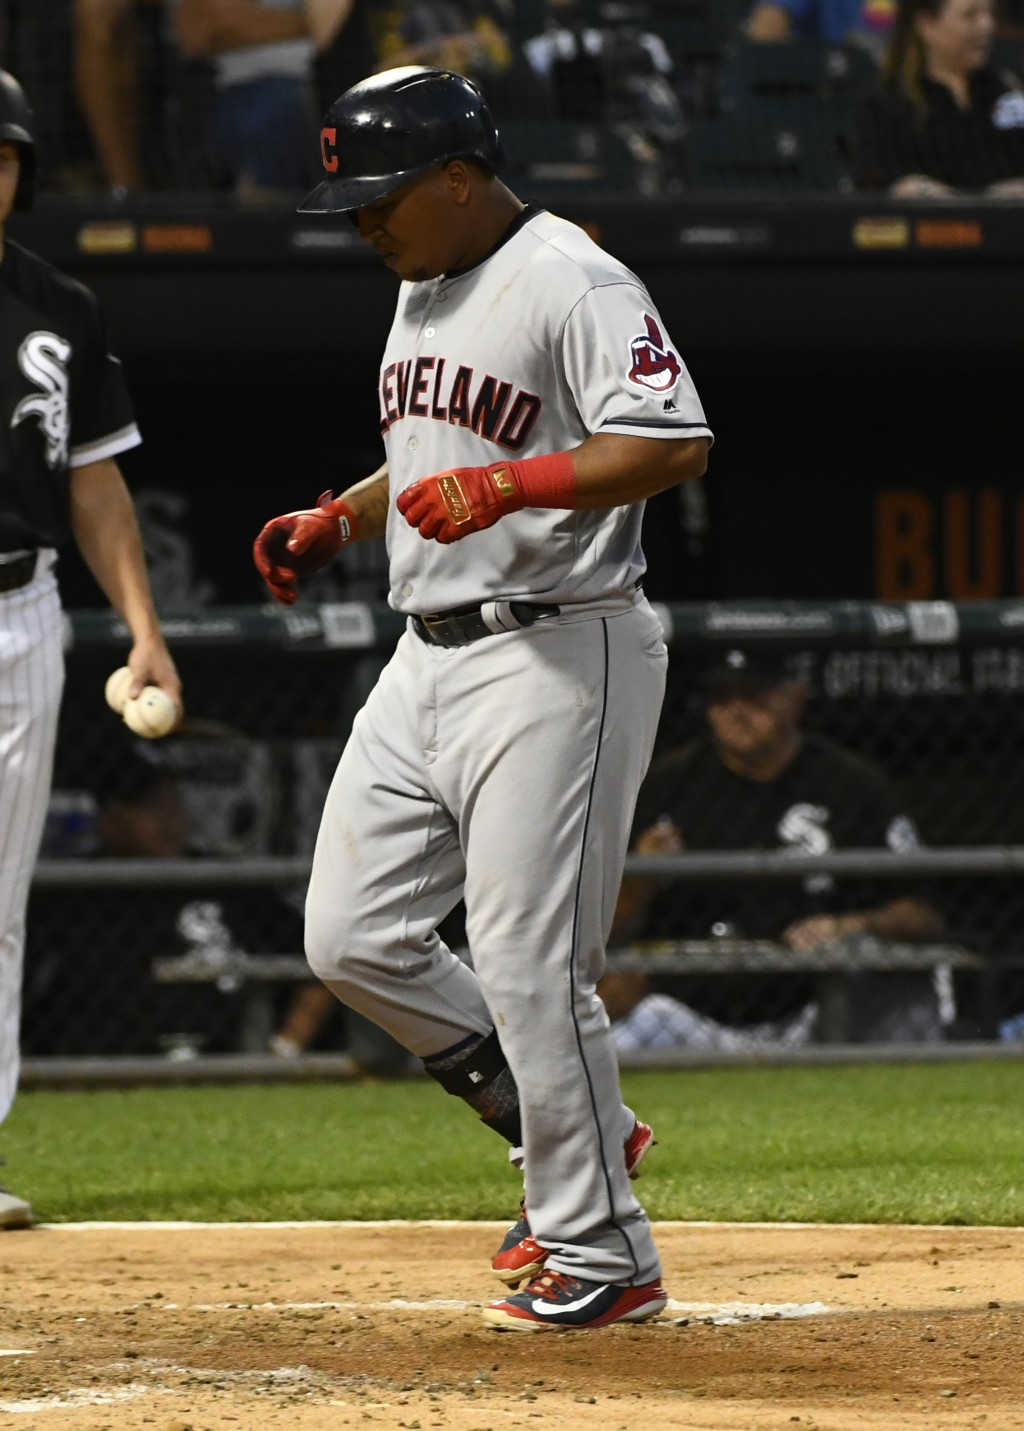 Cleveland Indians' Jose Ramirez crosses home plate after his home run against the Chicago White Sox during the sixth inning of a baseball game on Satu